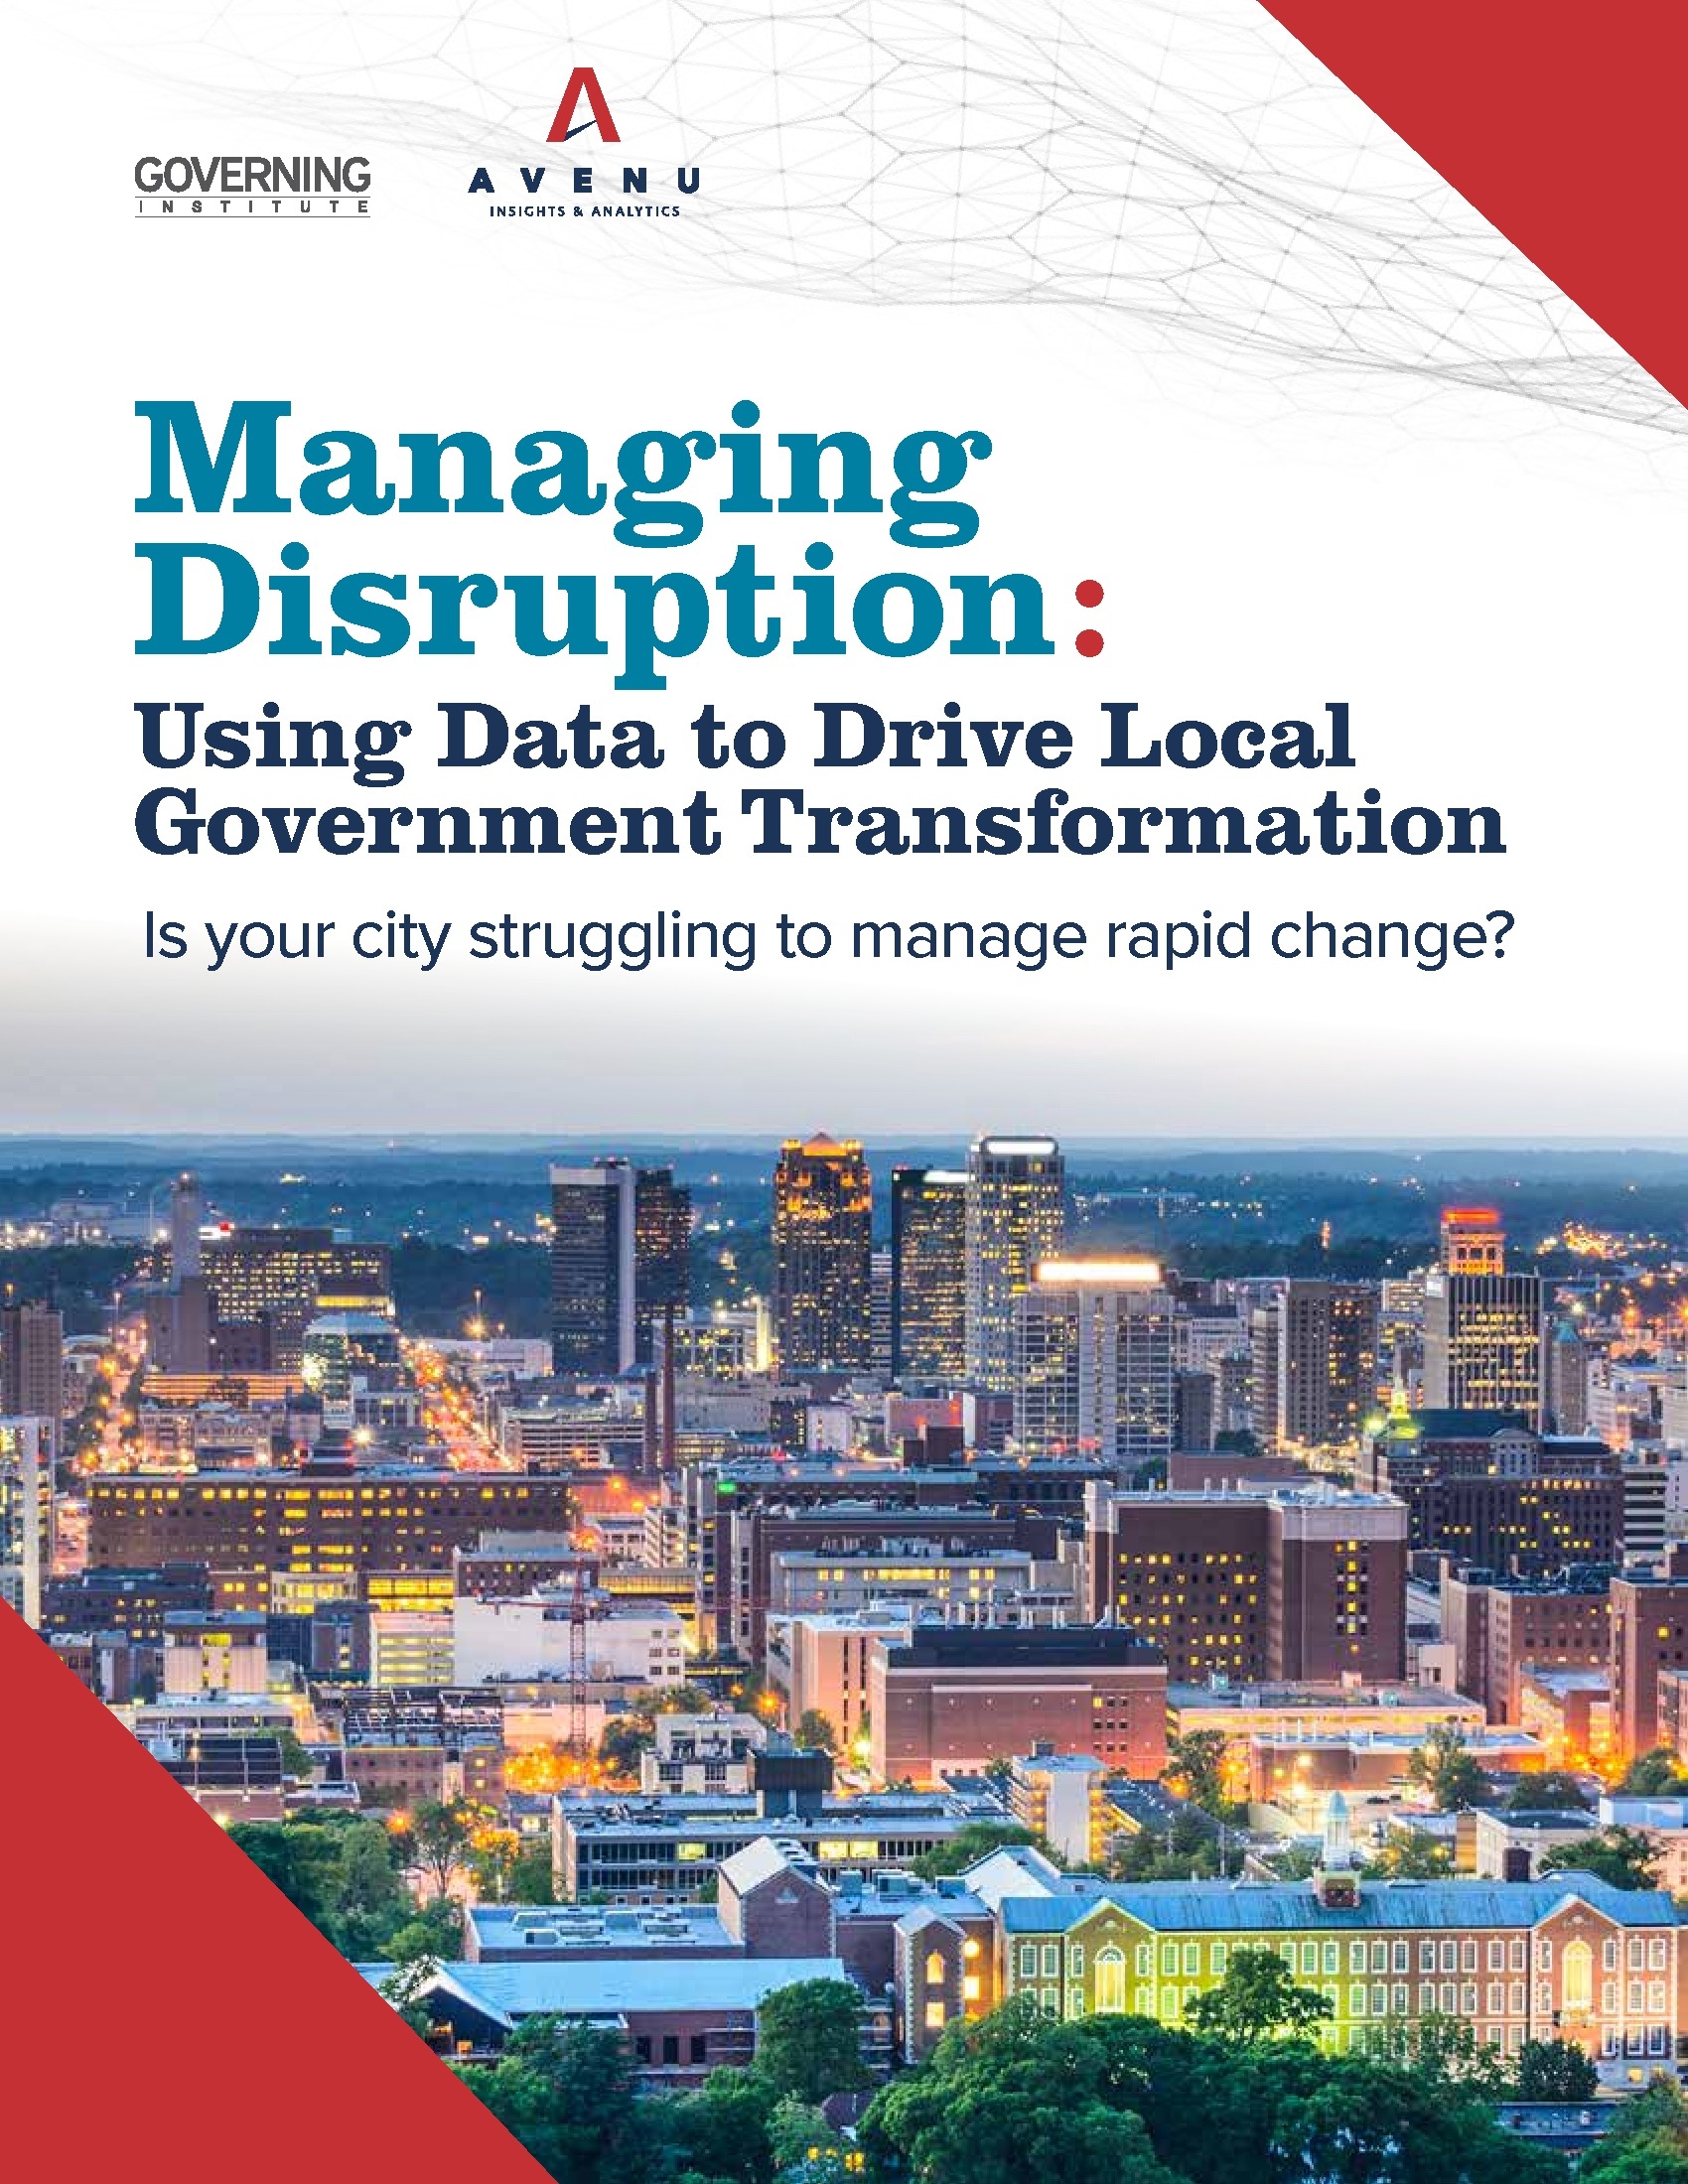 Managing Disruption: Using Data to Drive Local Government Transformation